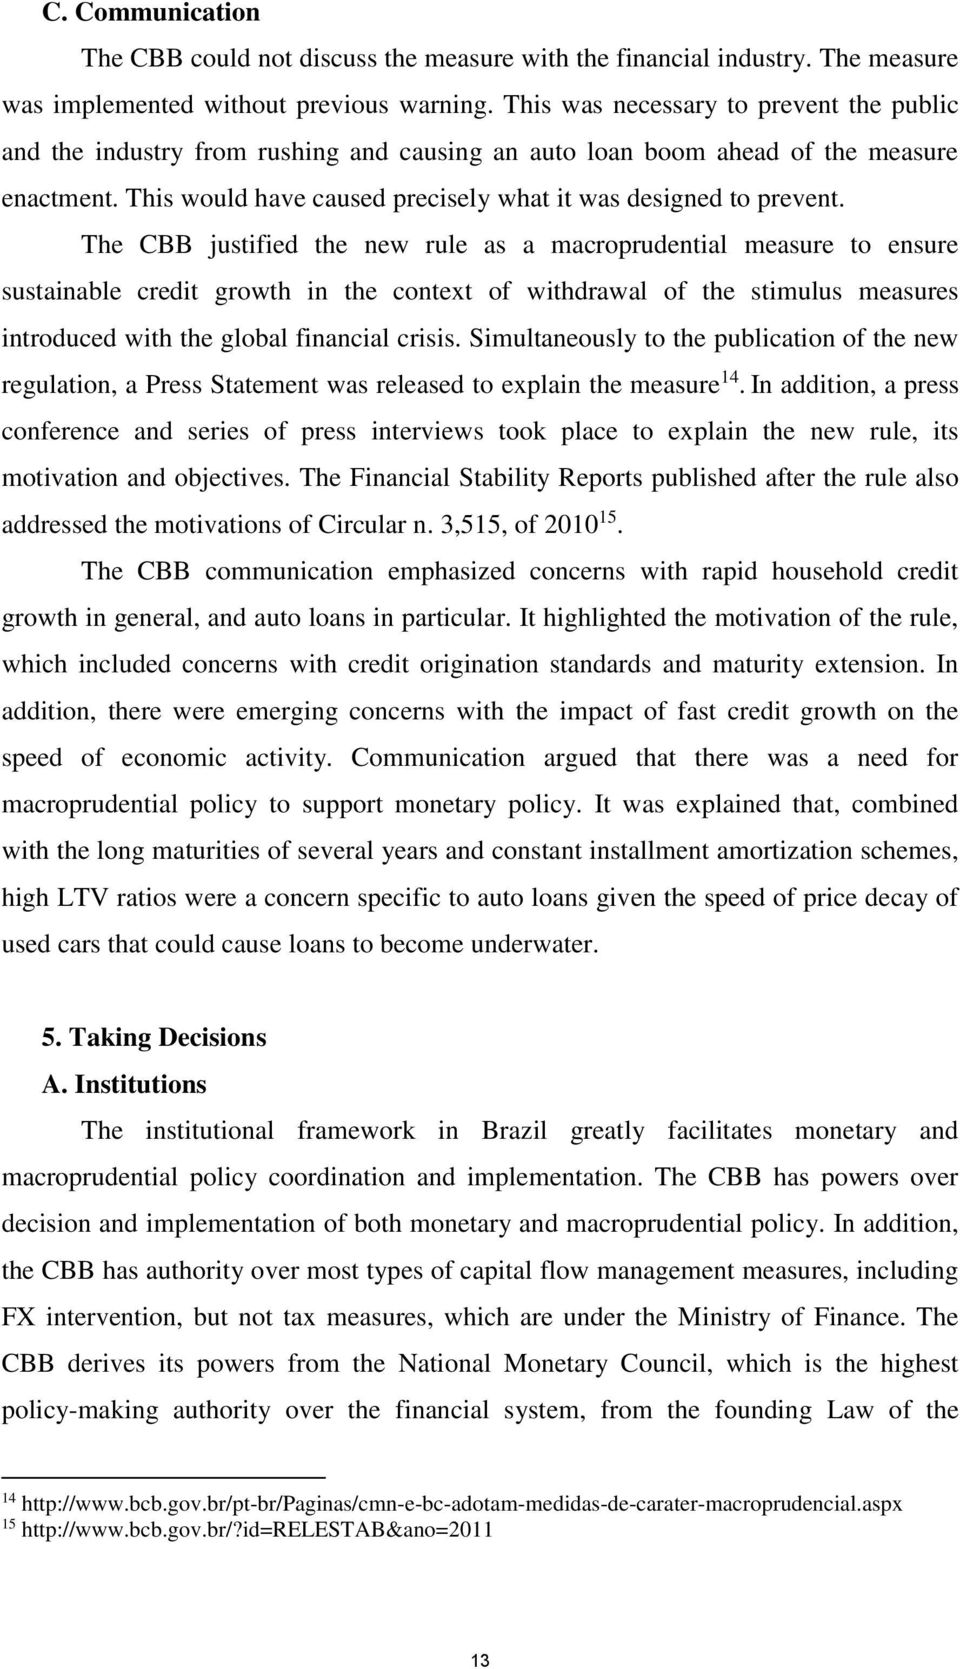 The CBB justified the new rule as a macroprudential measure to ensure sustainable credit growth in the context of withdrawal of the stimulus measures introduced with the global financial crisis.